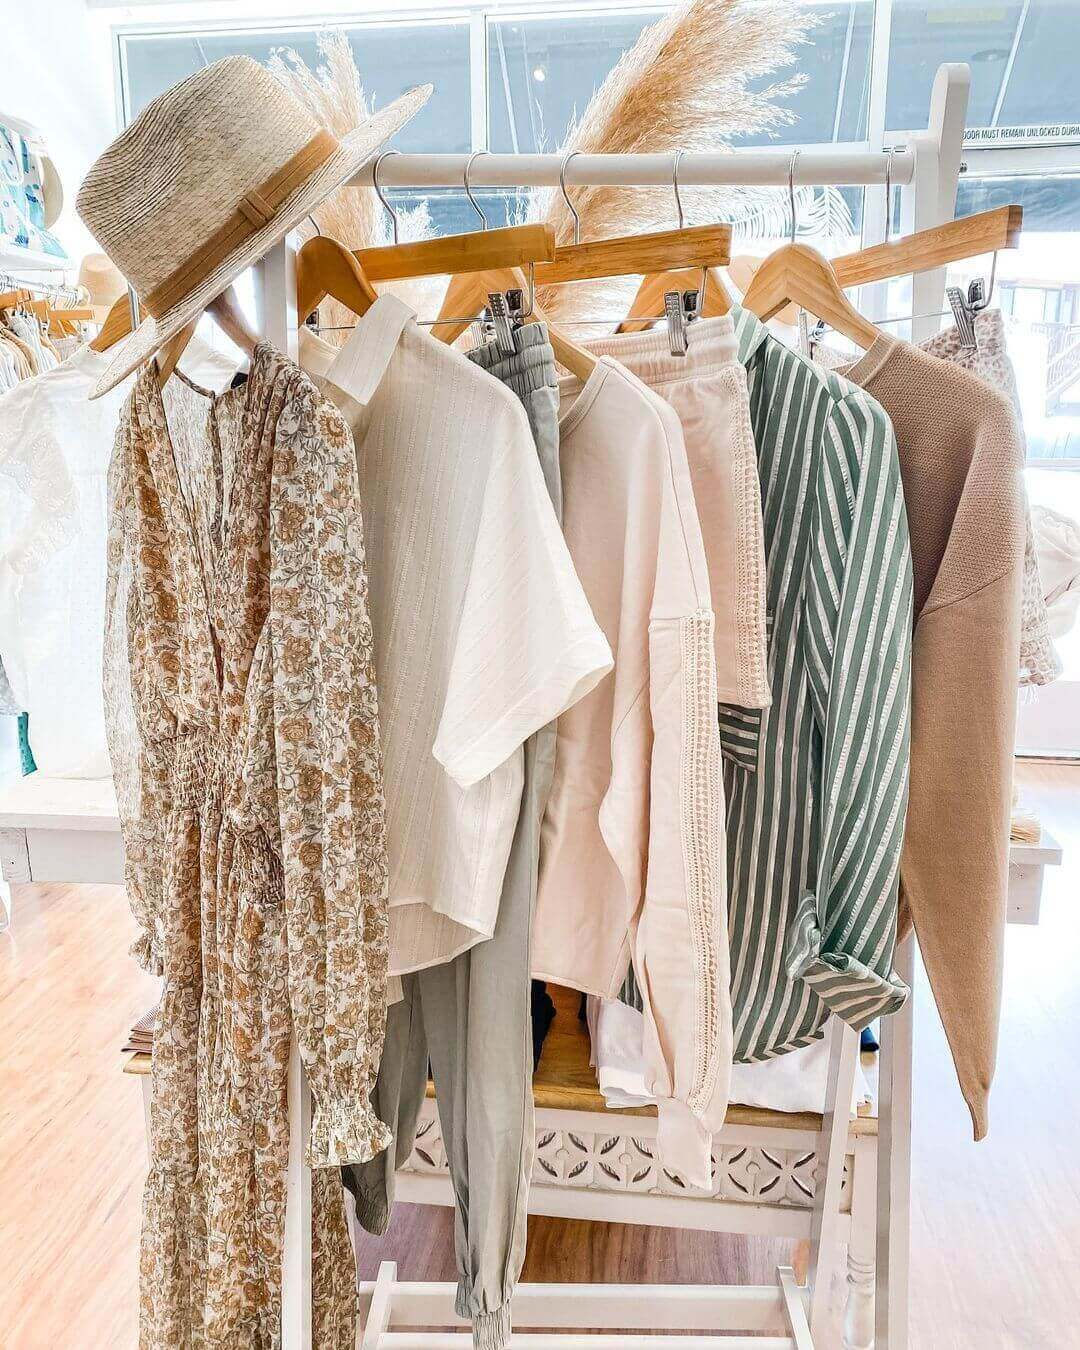 How to transition to quality eco wardrobe